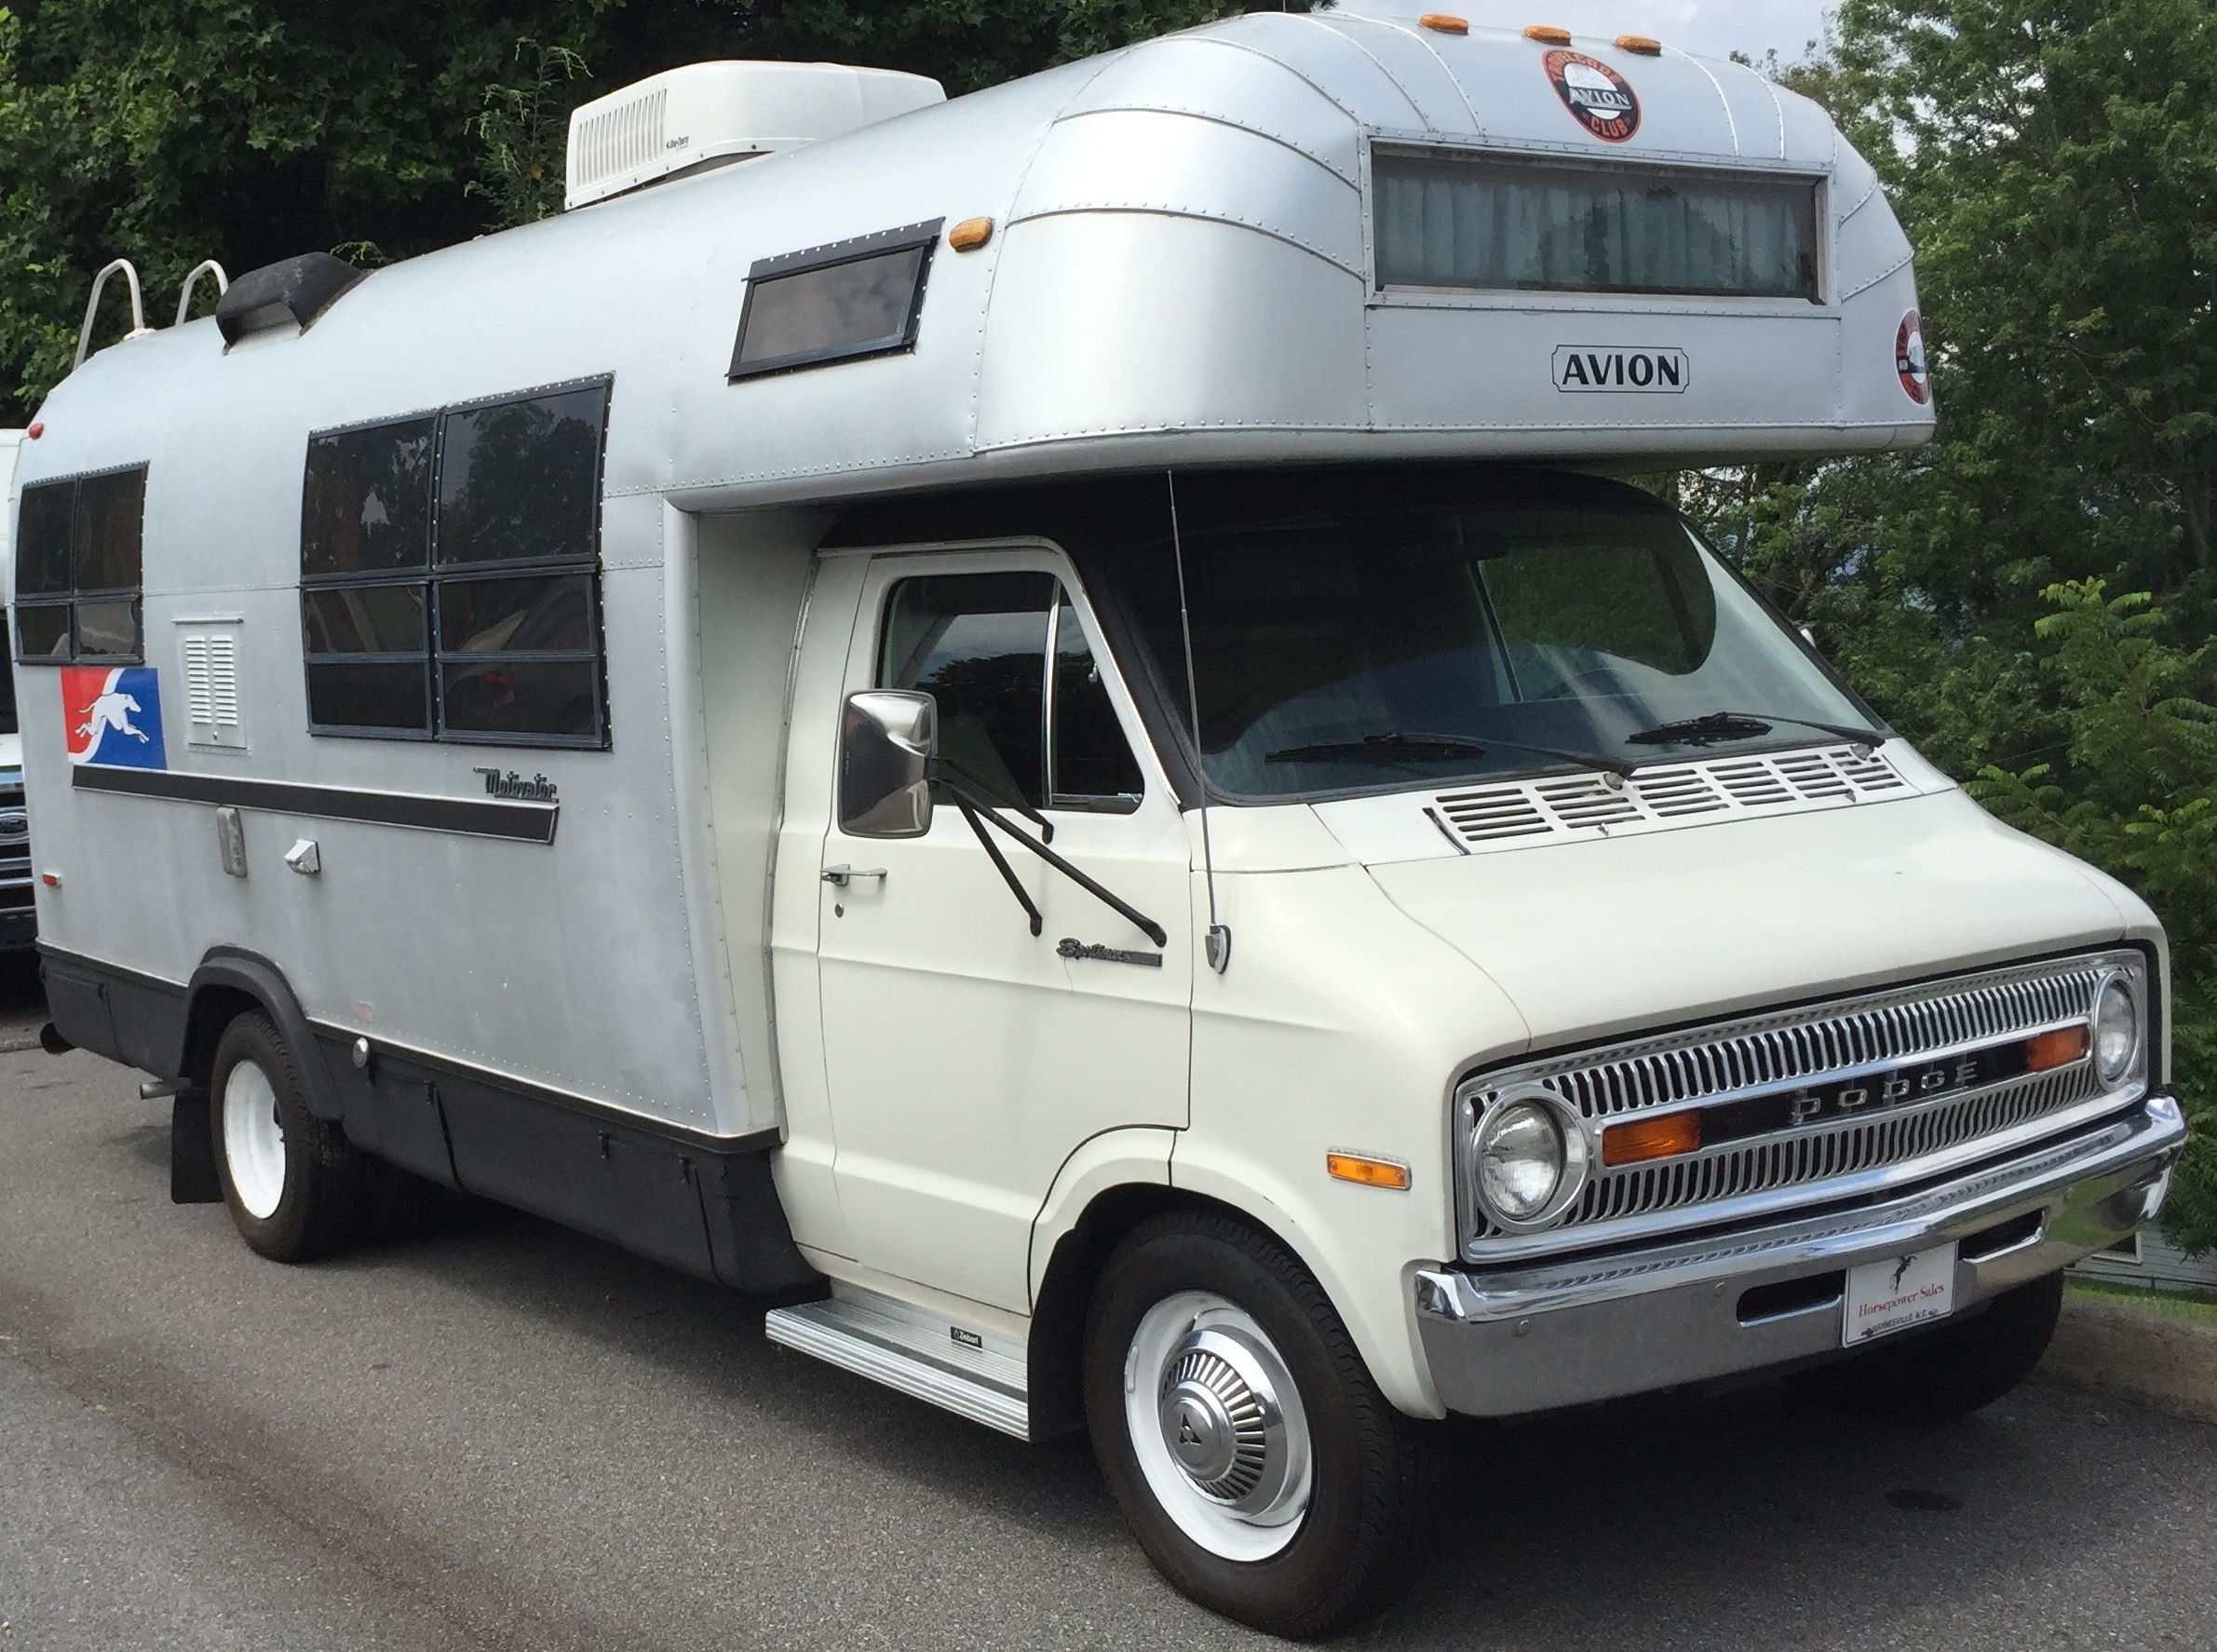 1973 Avion Cayo Motivator Motorhome Dodge pic taken July 2015 at